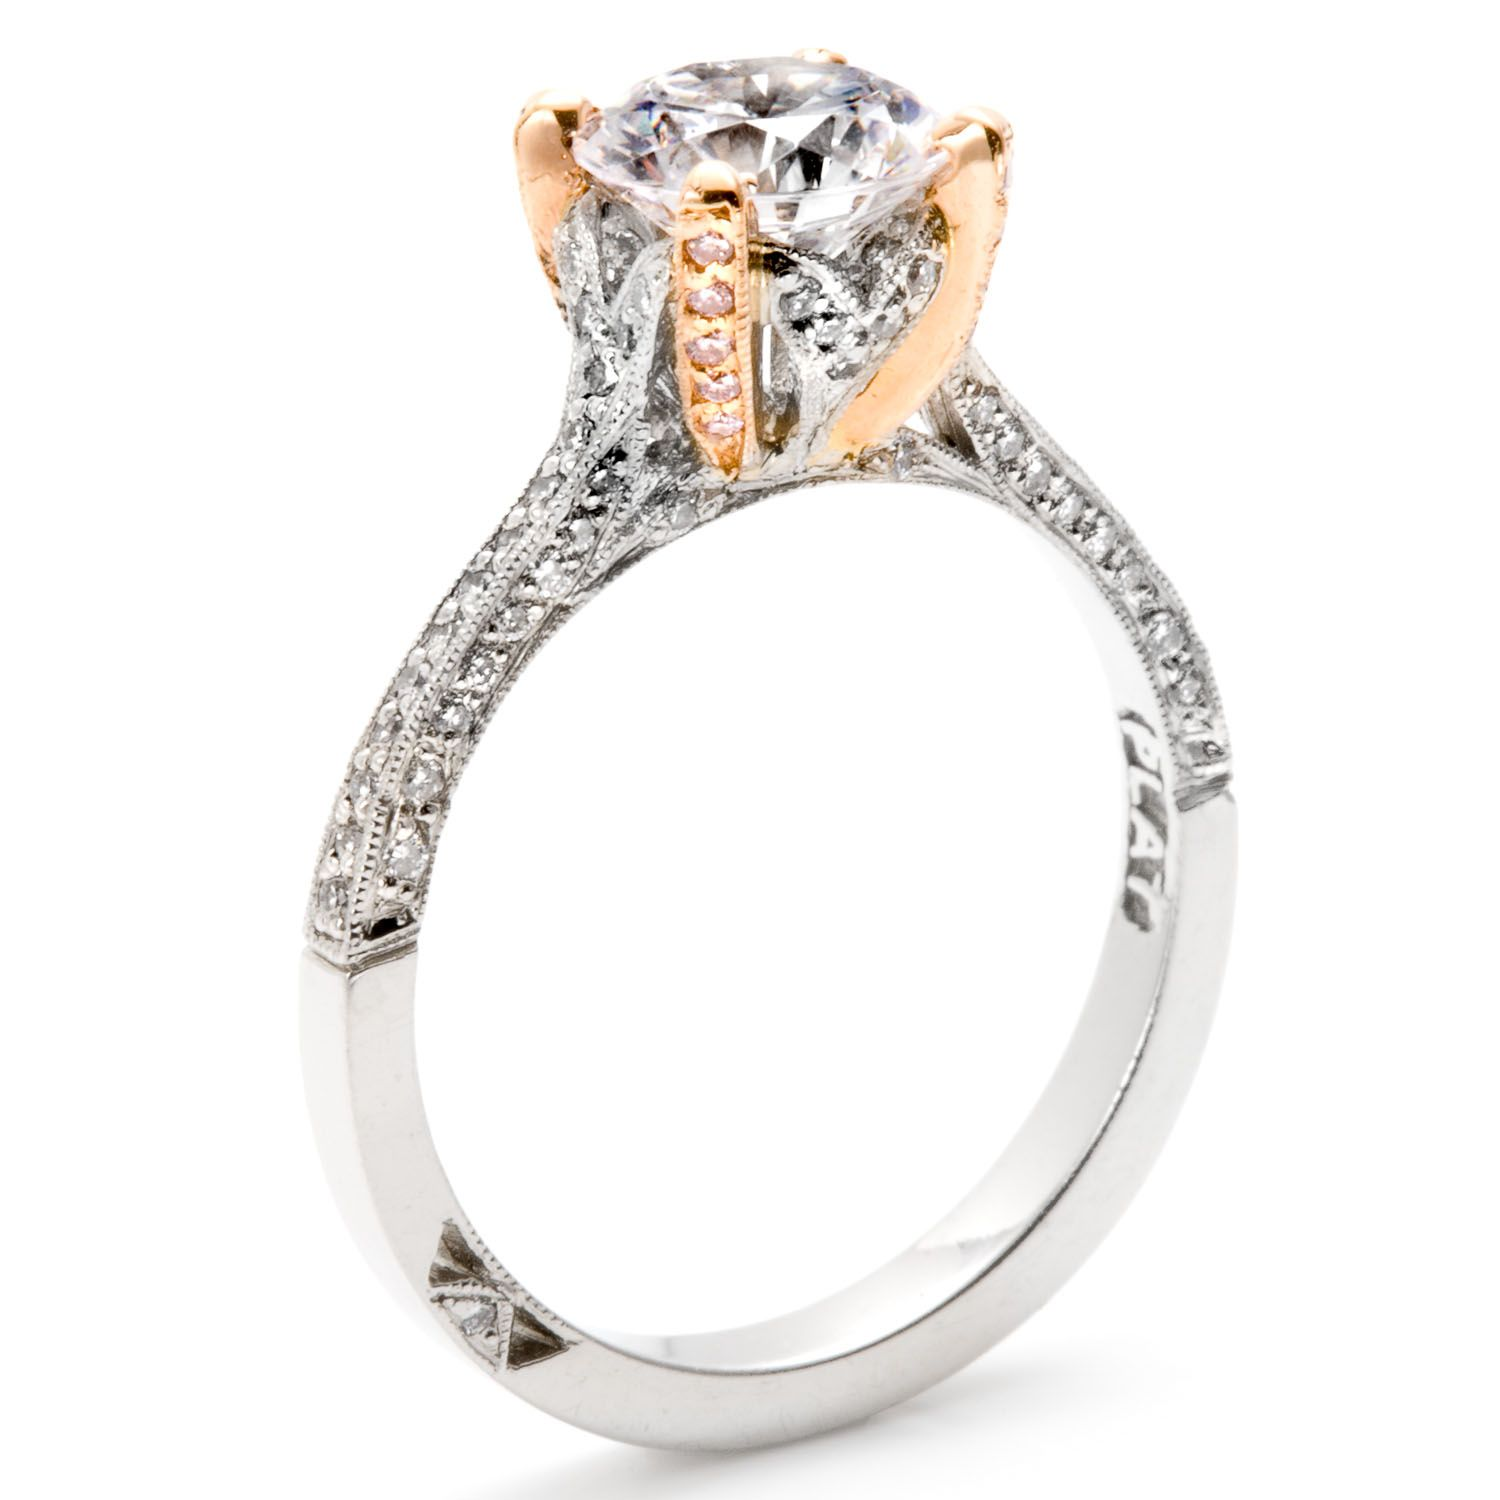 cute ring wedding ring diamond images about Cute Ring on Pinterest Vintage diamond Wedding ring and Engagement rings